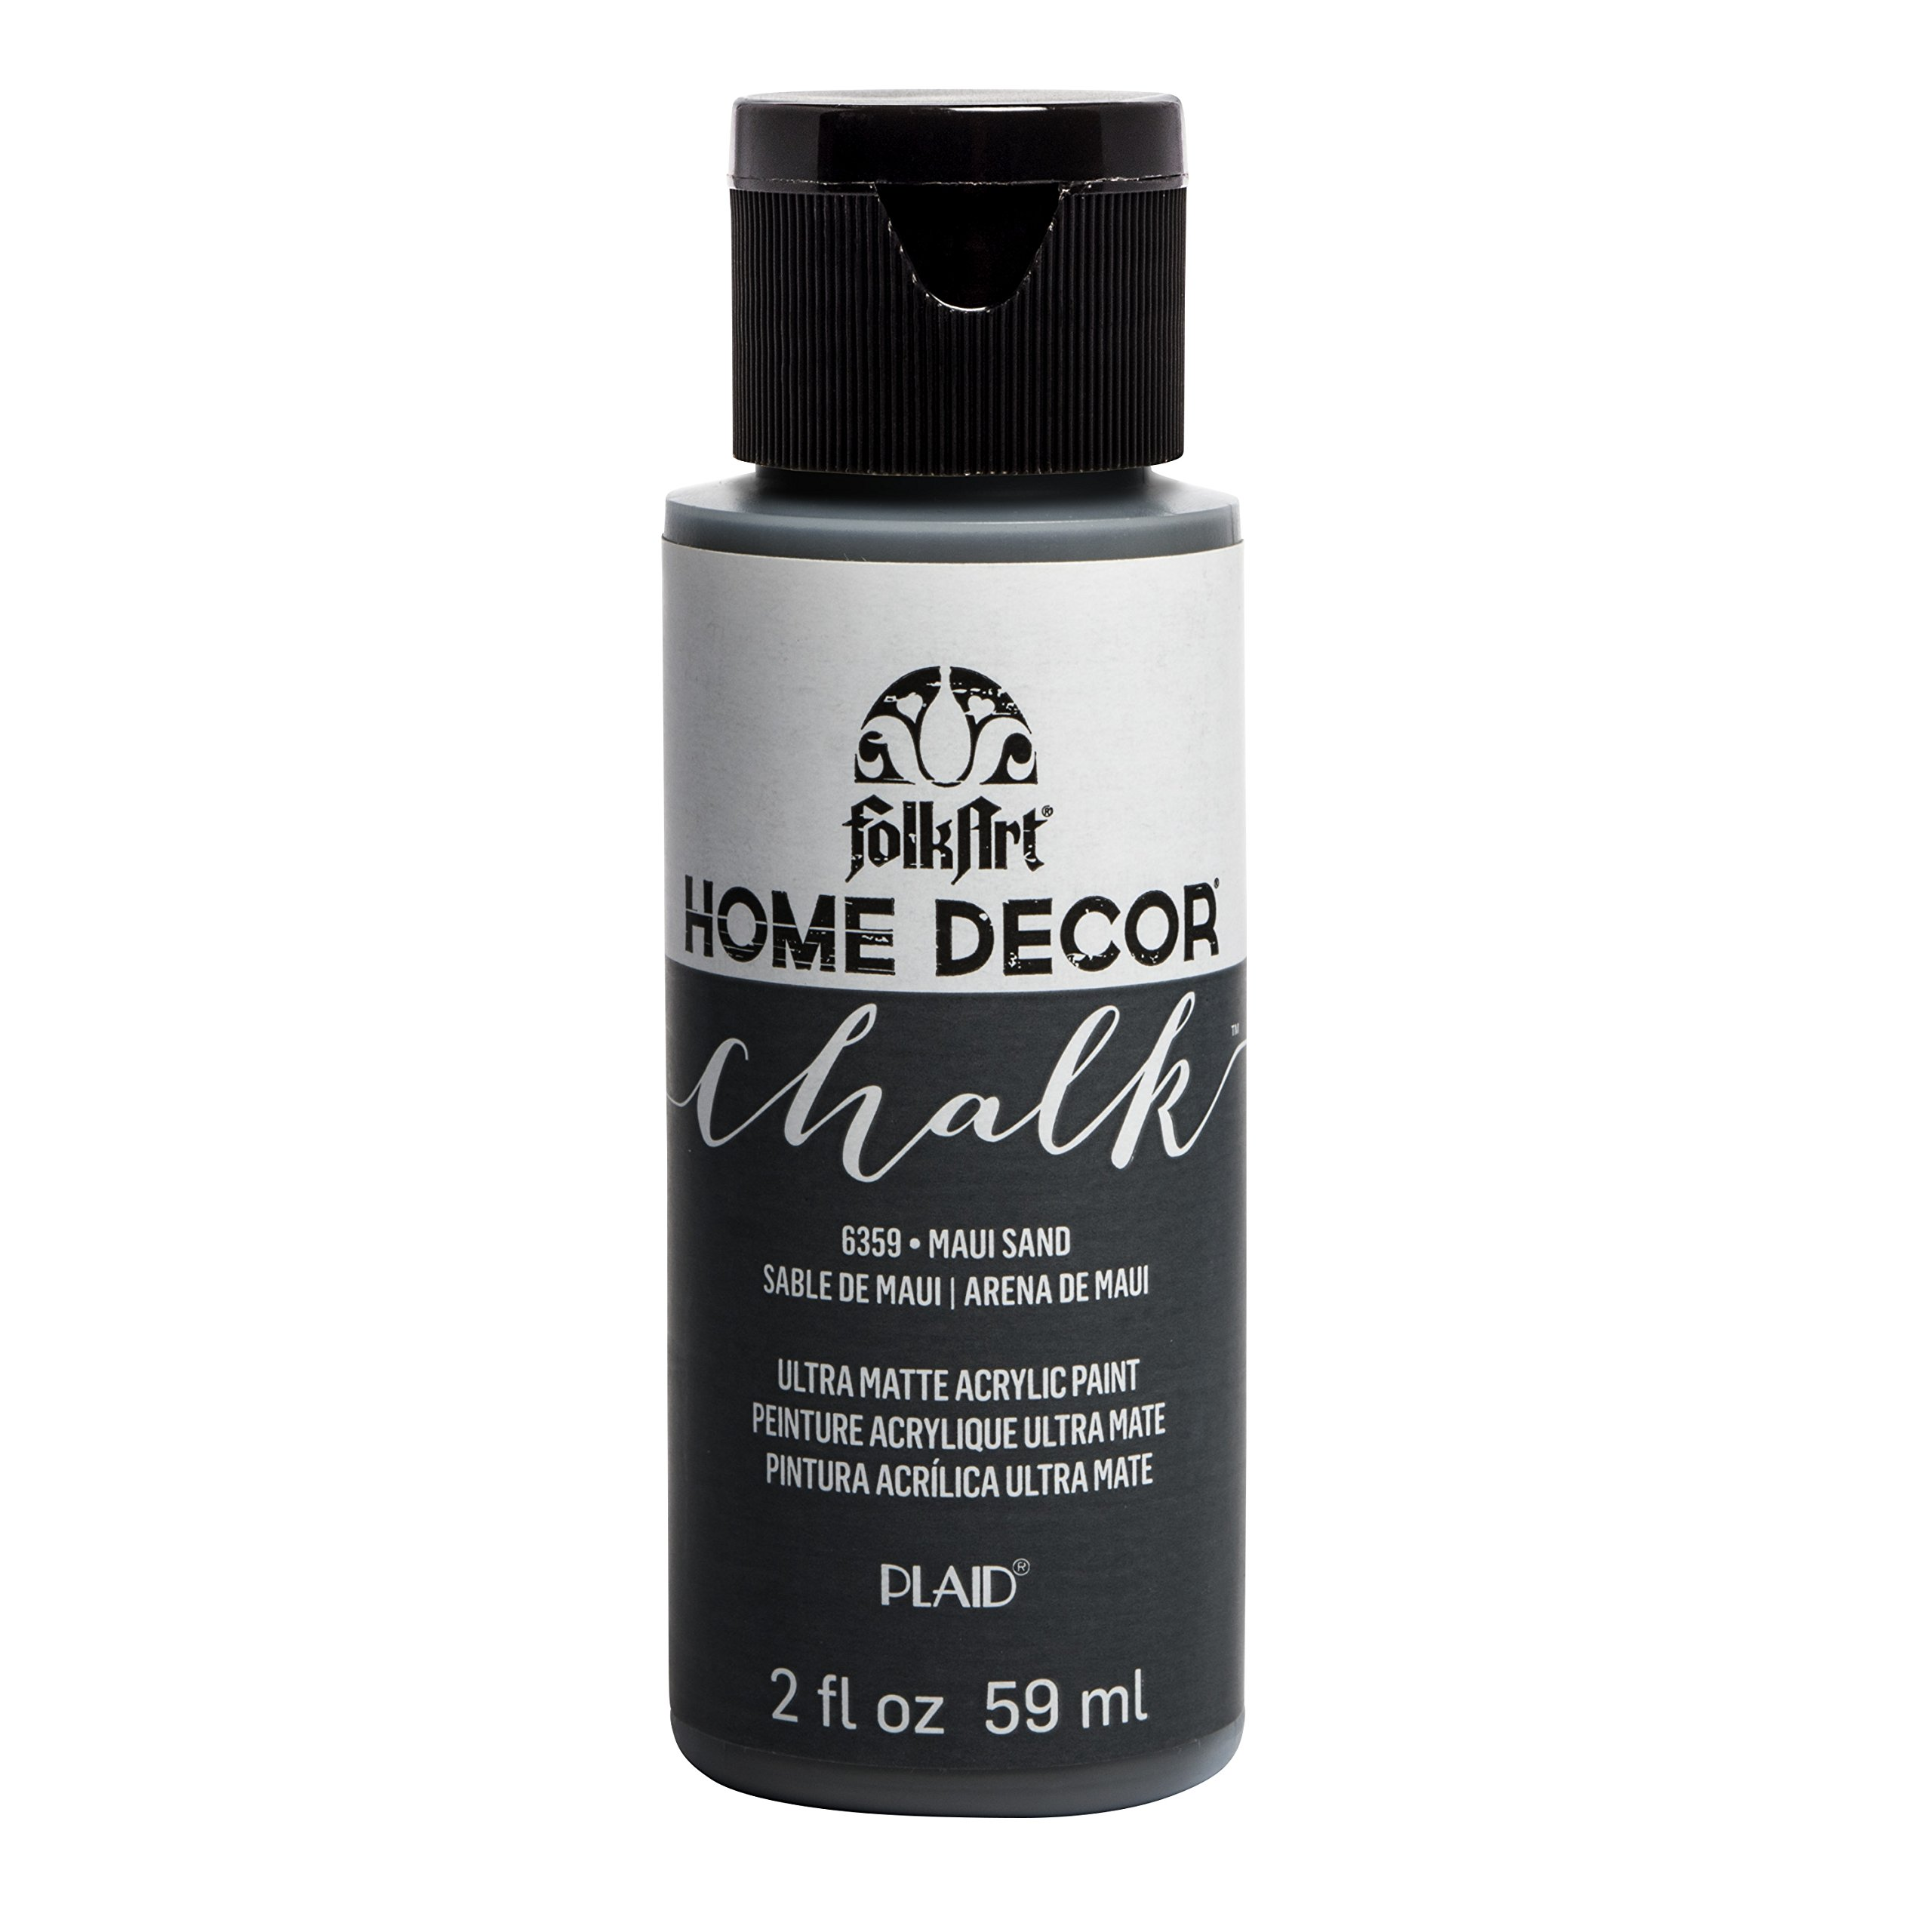 FolkArt 6359 Home Décor Chalk Furniture & Craft Paint in Assorted Colors, 2oz, Maui Sand